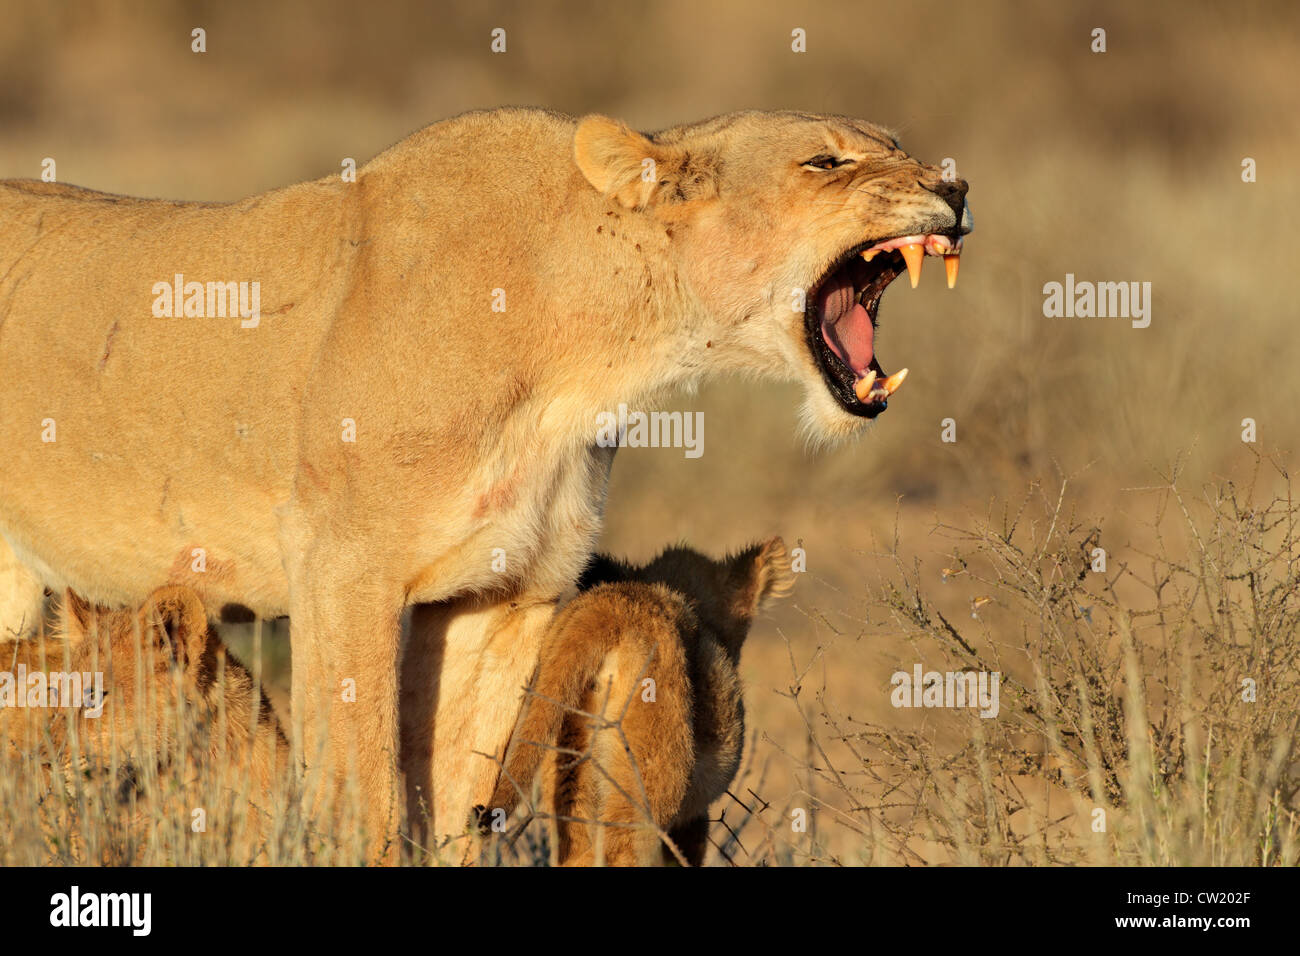 Aggressive lioness (Panthera leo) defending her young cubs, Kgalagadi Transfrontier Park, South Africa - Stock Image